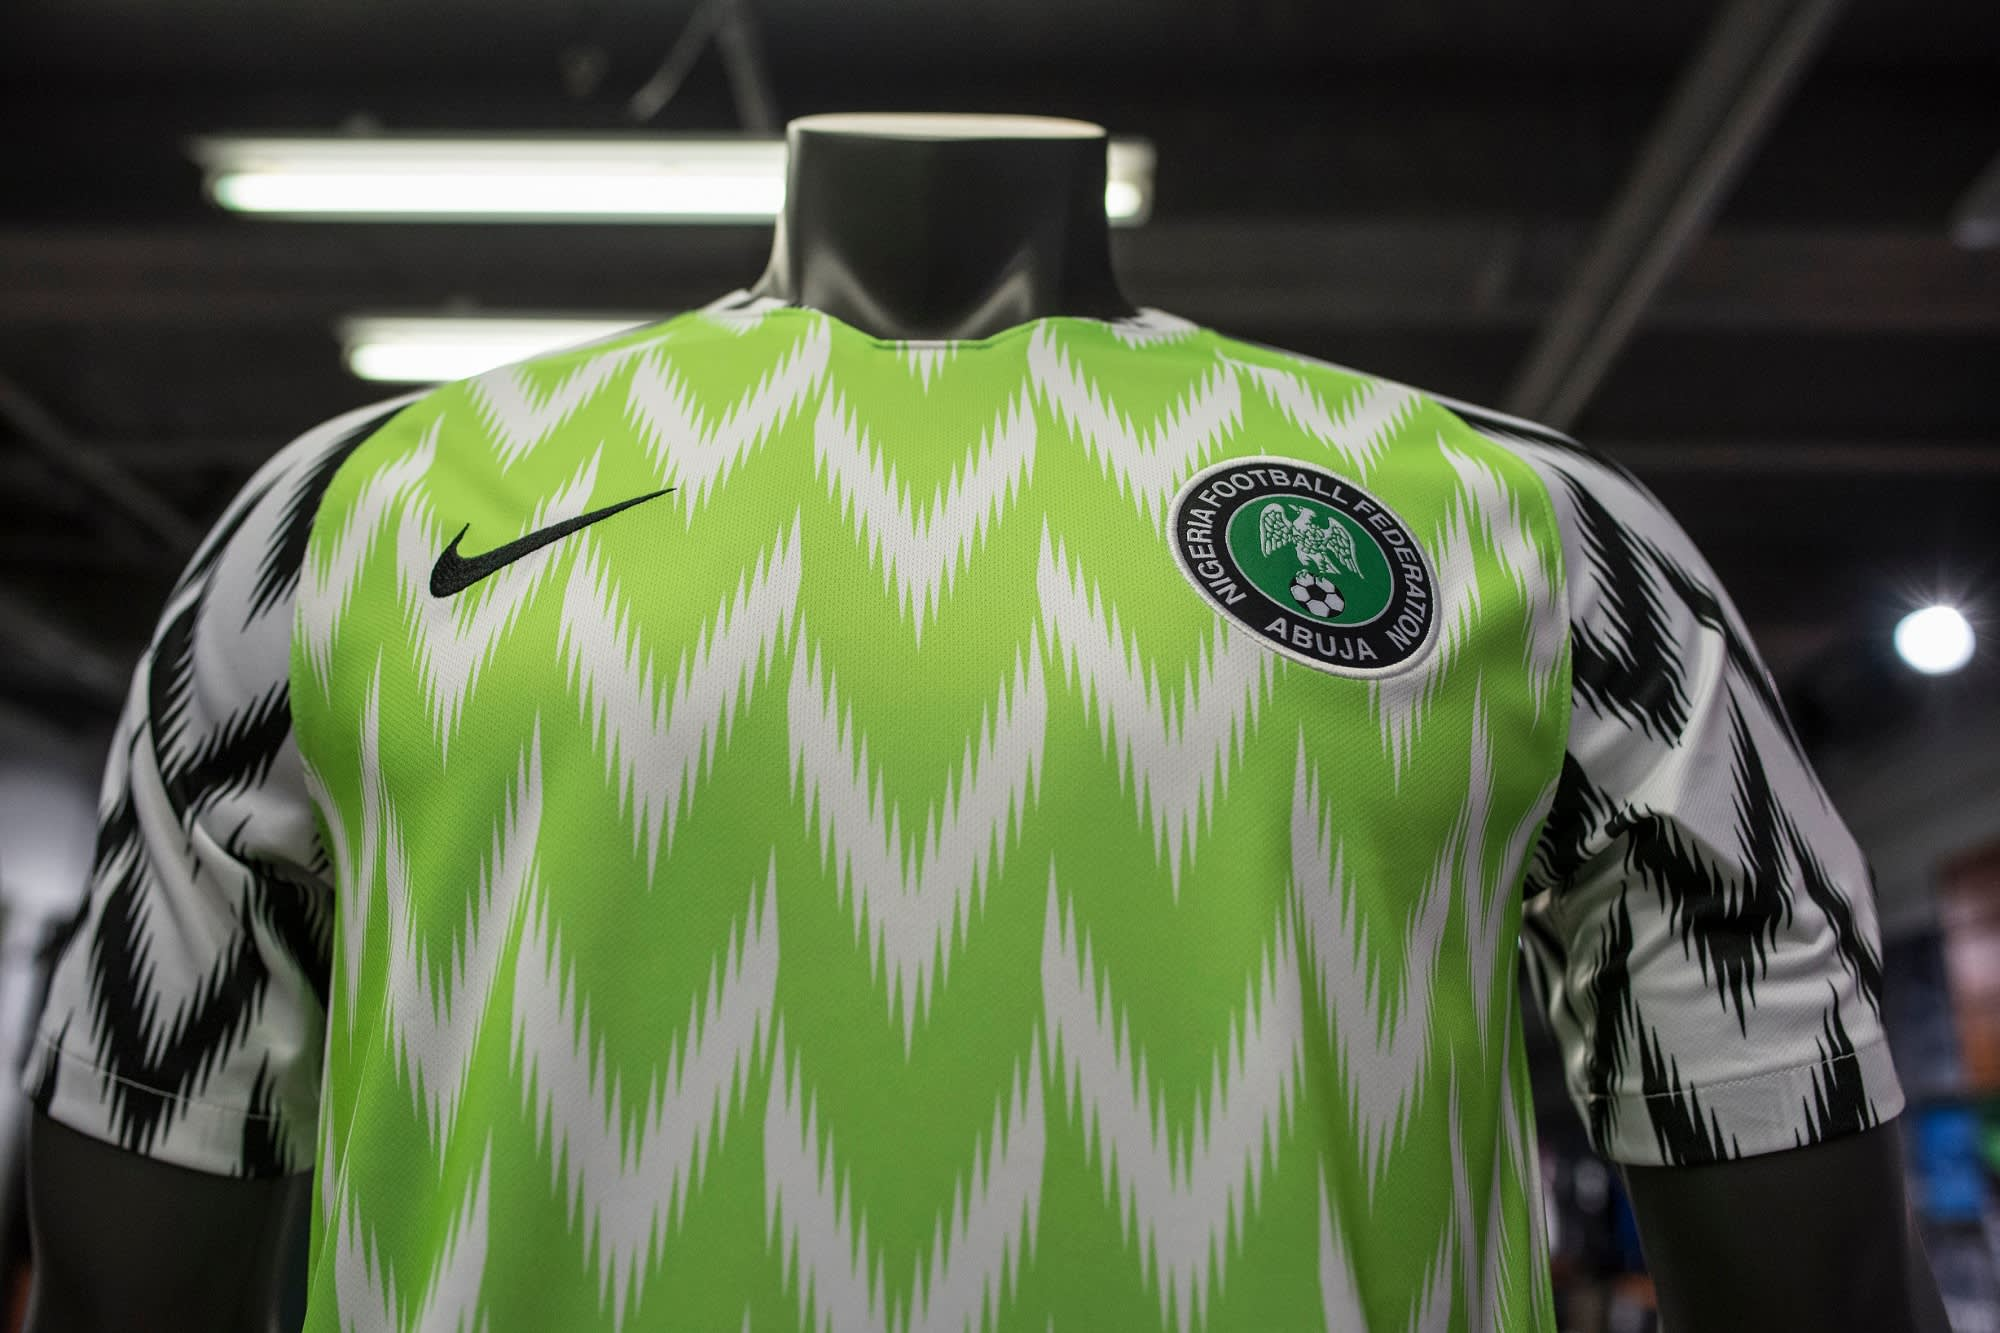 c6ac18238 Nike s Nigerian World Cup jersey breaks sales records